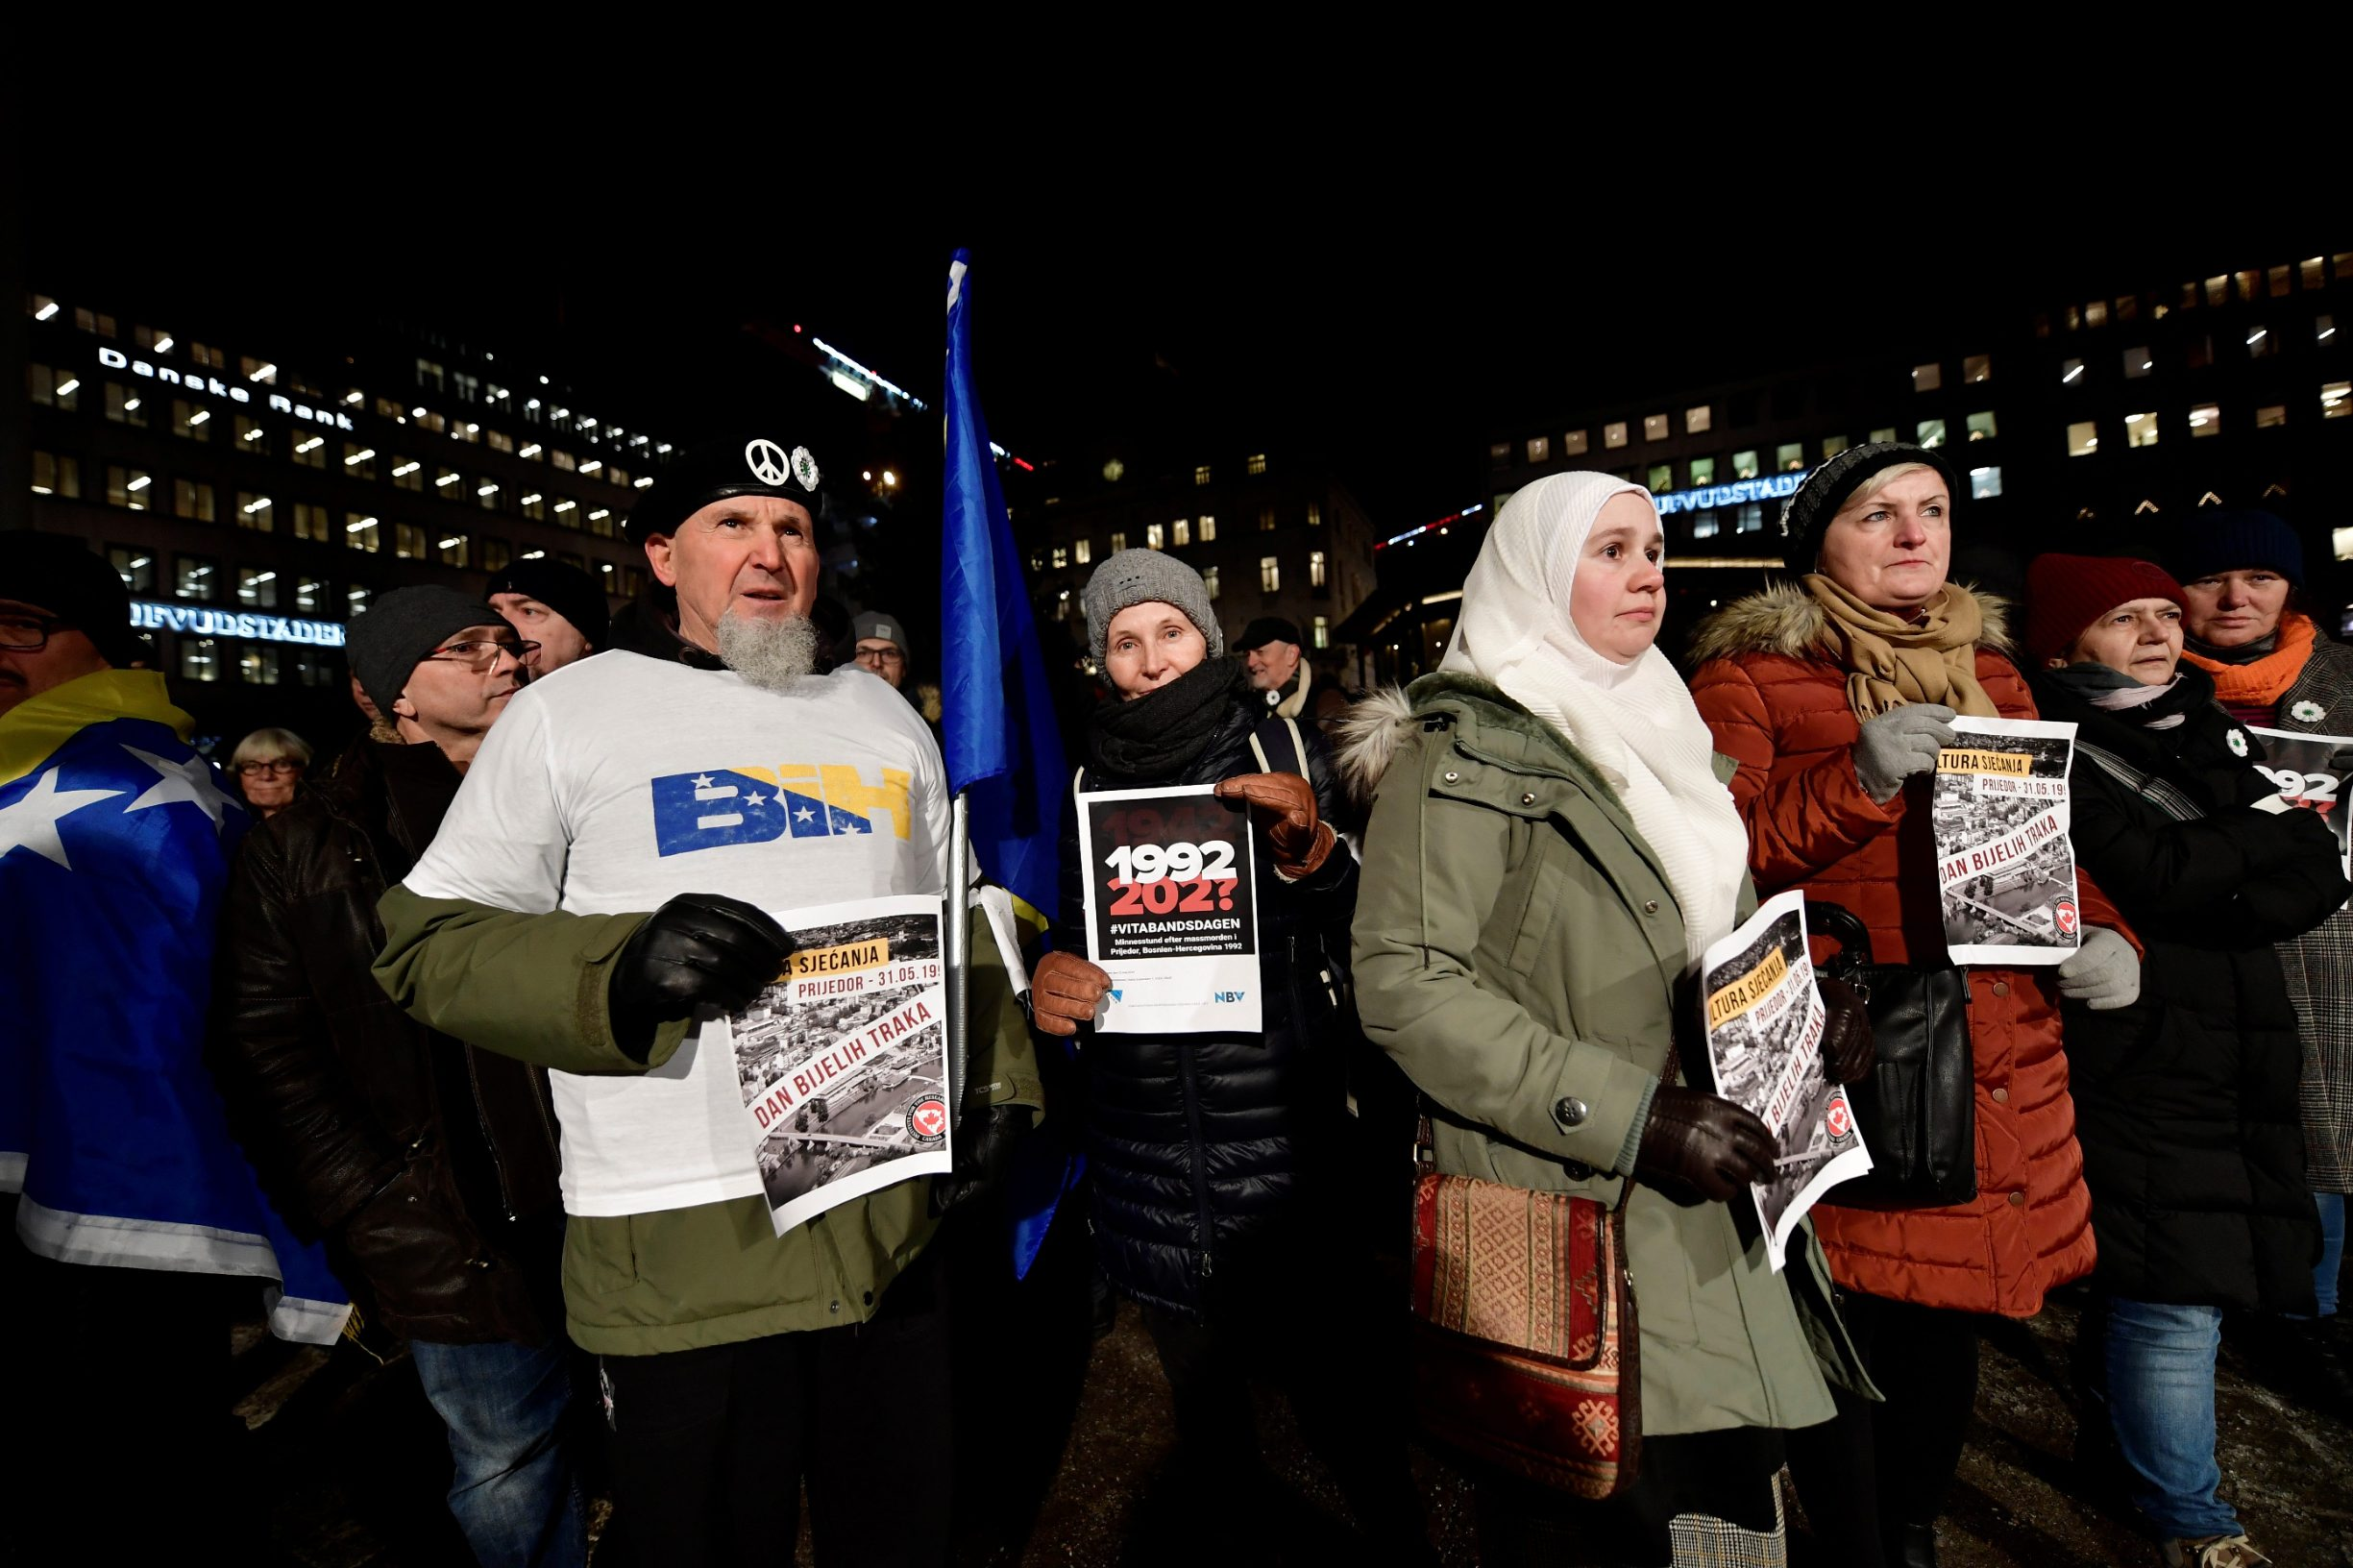 Protesters hold posters at a demonstration against the awarding of the 2019 Nobel literature prize to Peter Handke in Stockholm, Sweden December 10, 2019. TT News Agency/Stina Stjernkvist via REUTERS    THIS IMAGE HAS BEEN SUPPLIED BY A THIRD PARTY. SWEDEN OUT. NO COMMERCIAL OR EDITORIAL SALES IN SWEDEN